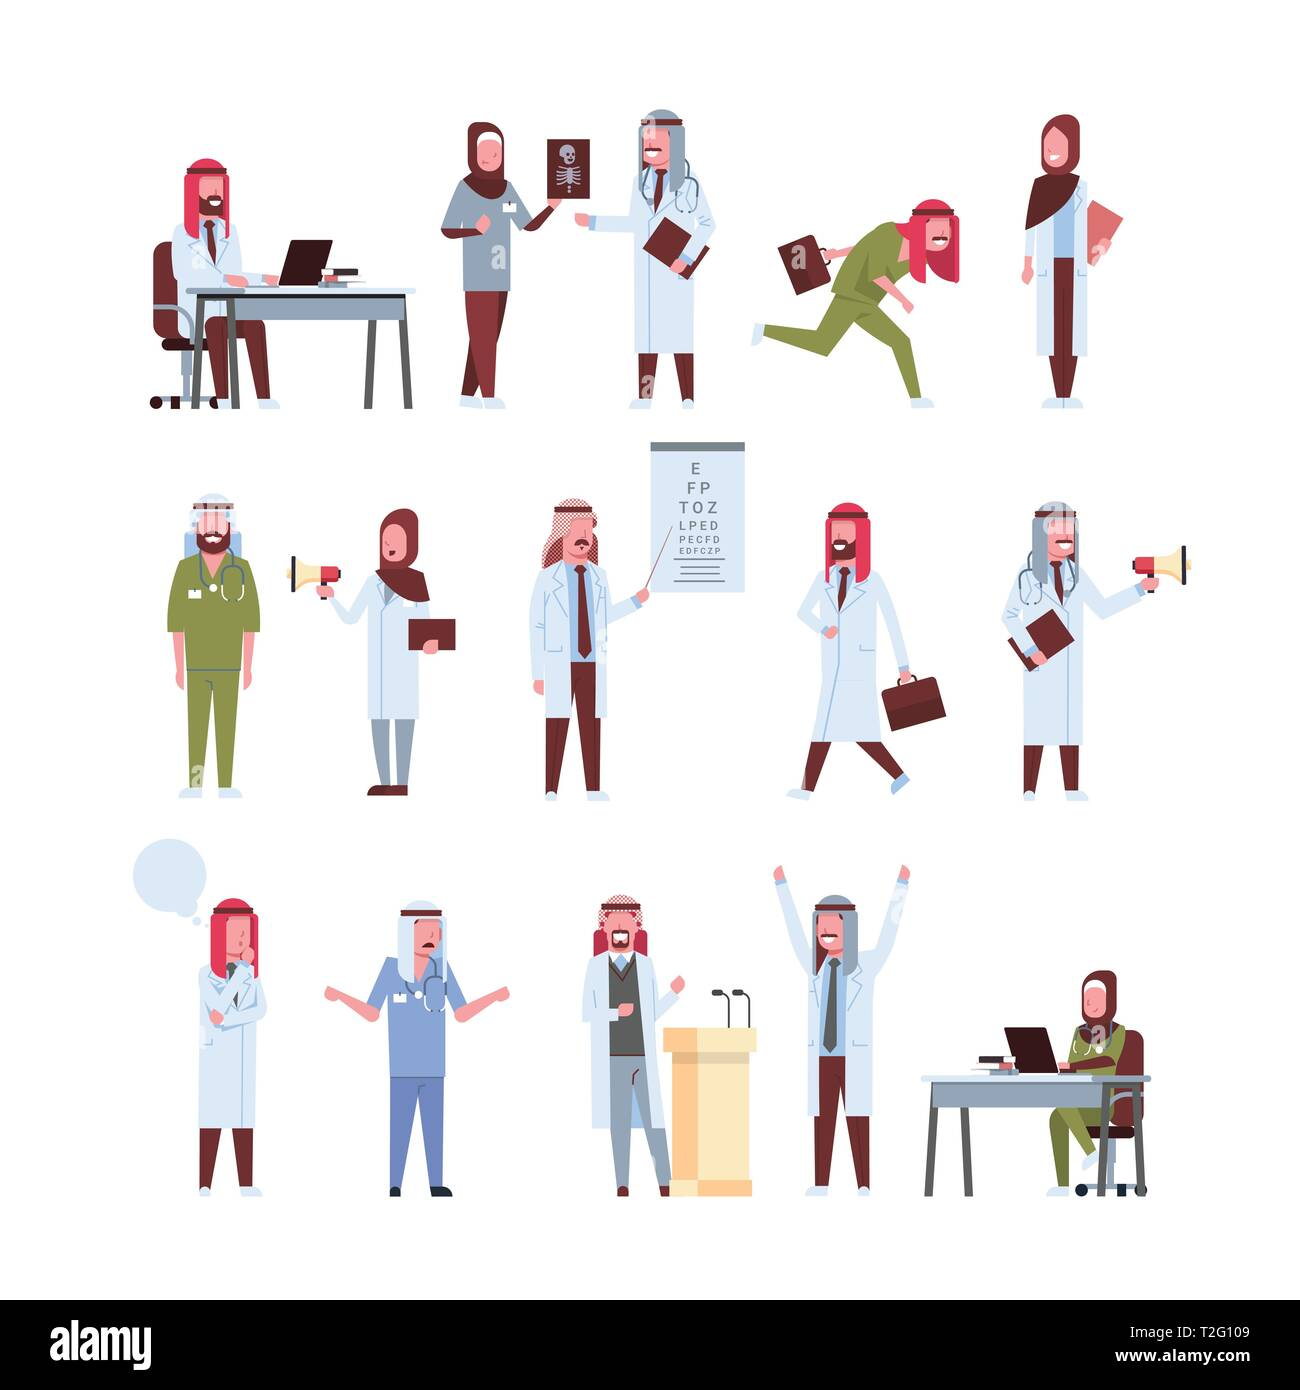 set arab doctors different poses working process arabic man woman in uniform hospital medicine workers collection male female cartoon characters full  - Stock Image